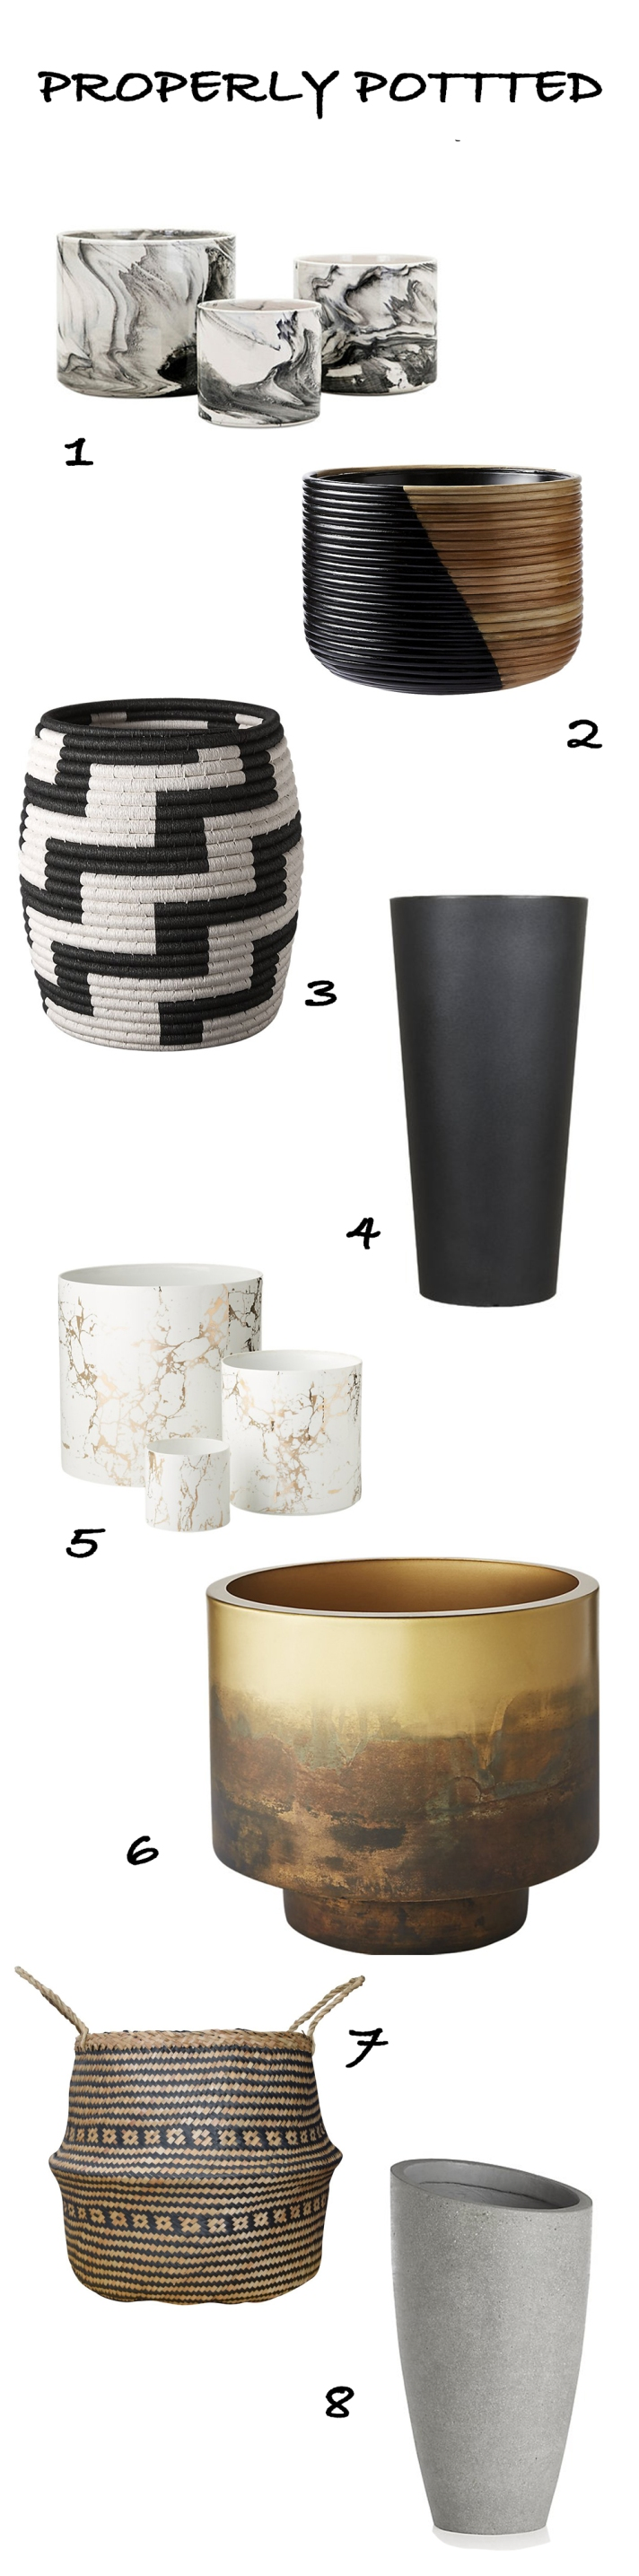 PLANT POT ROUNDUP FOR A MODERN BOHEMIAN HOME